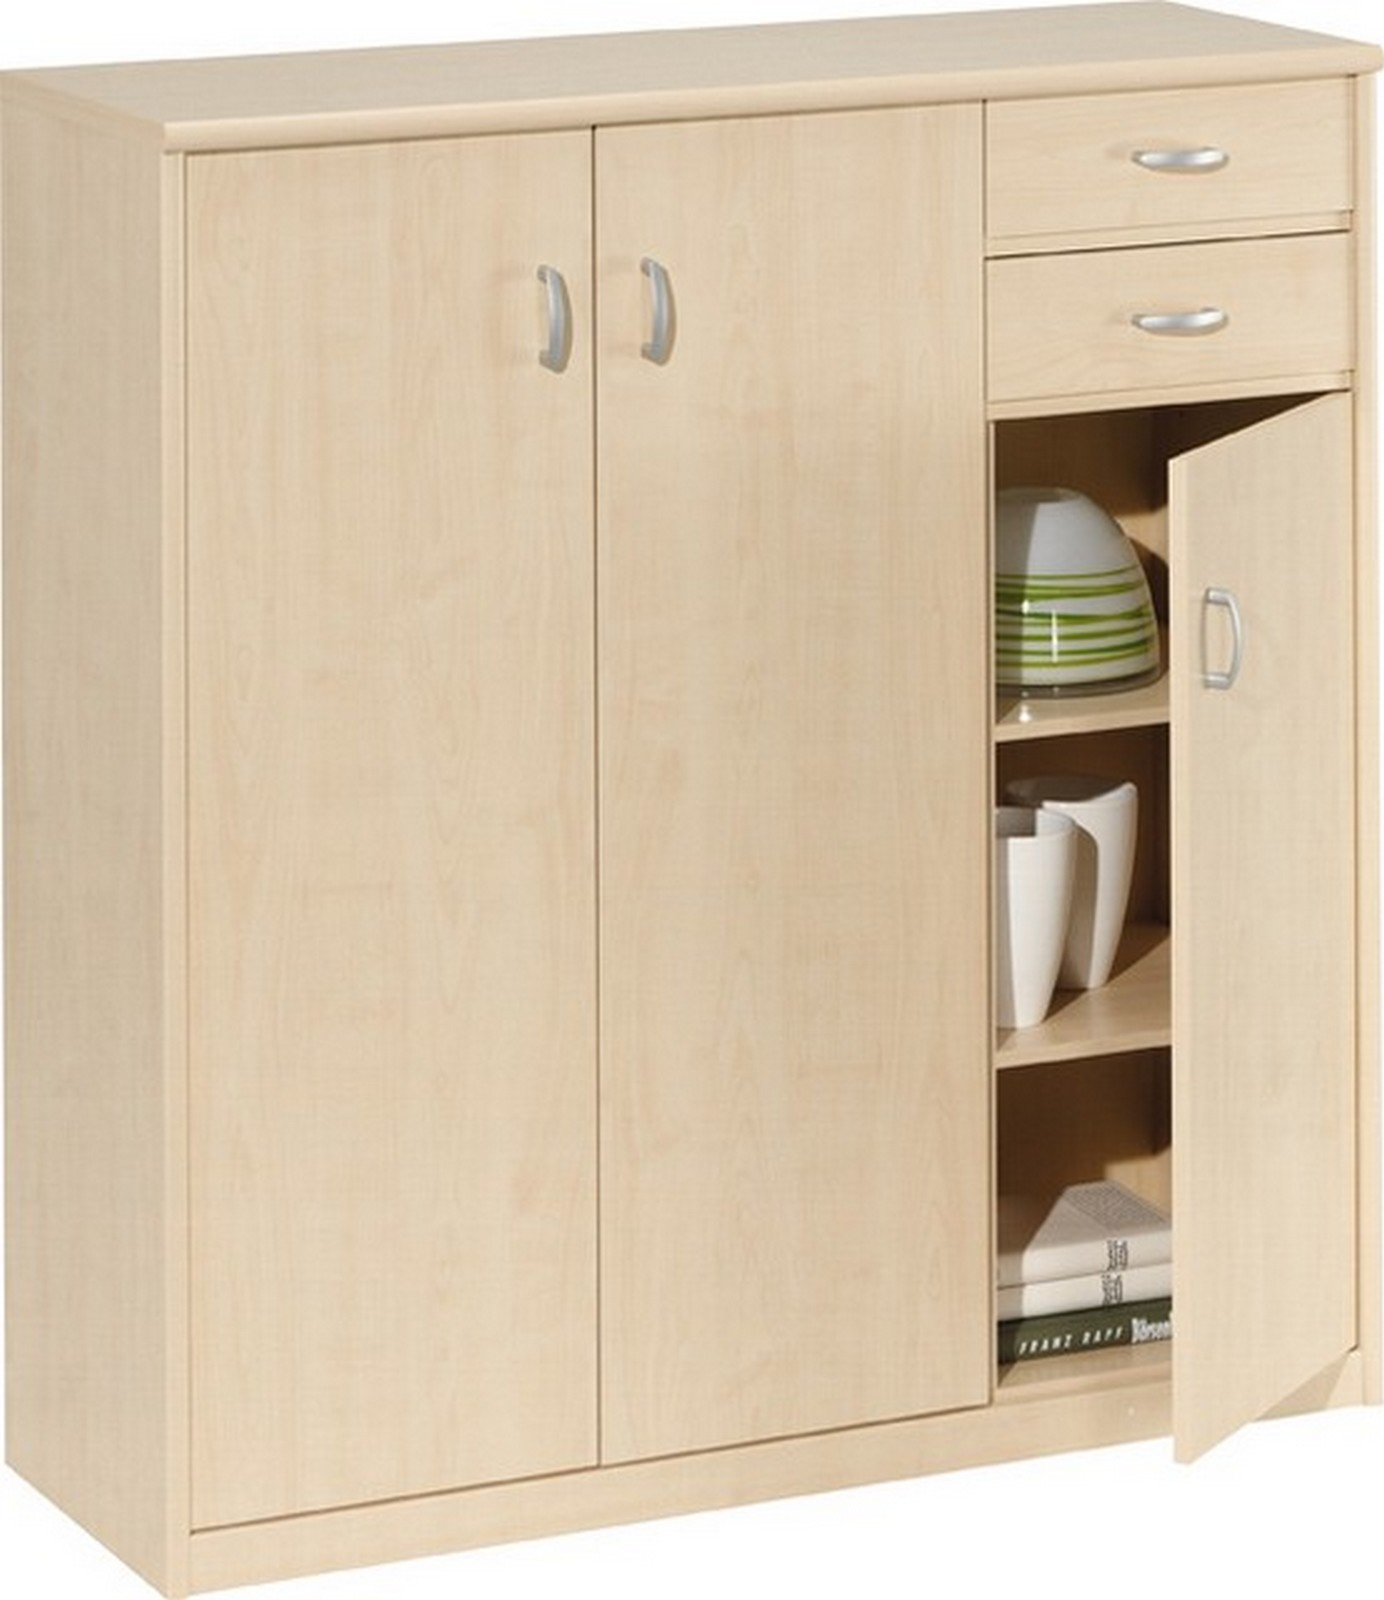 highboard kommode ahorn 3t ren 2schubladen ebay. Black Bedroom Furniture Sets. Home Design Ideas